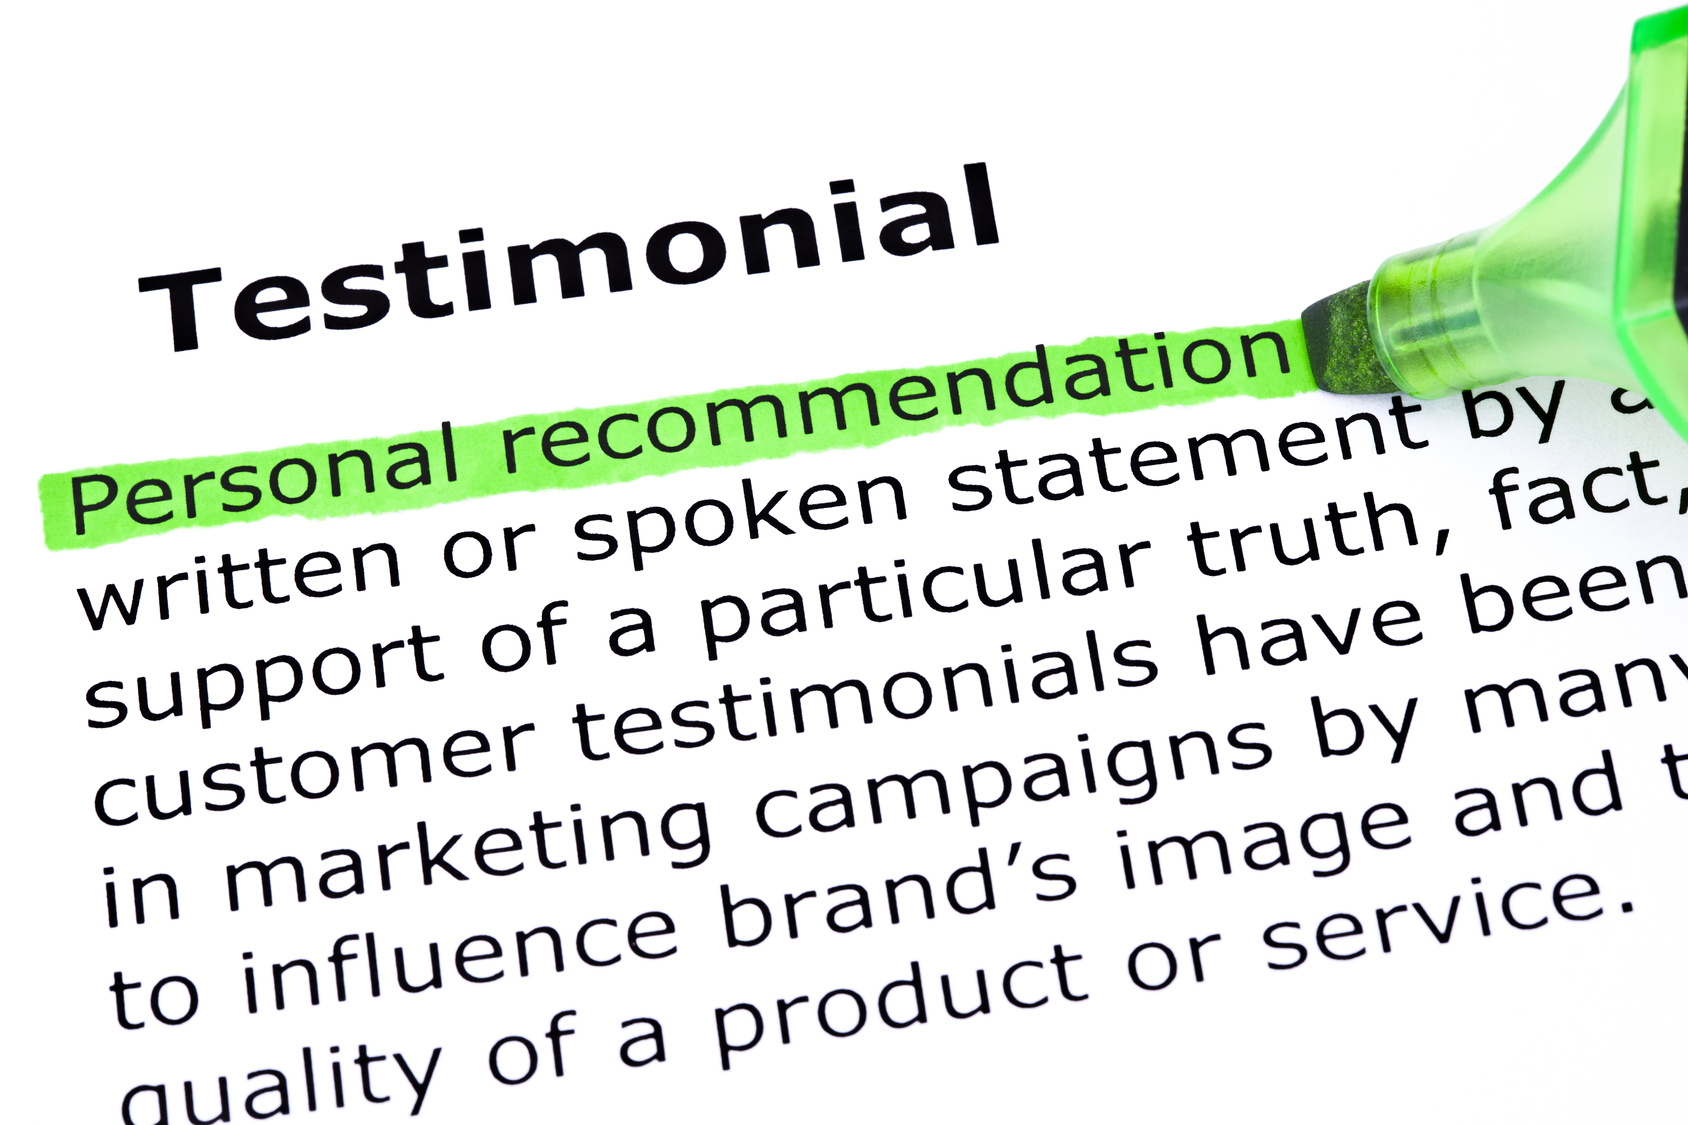 7 Ways to Use Testimonials That You May Have Never Thought Of